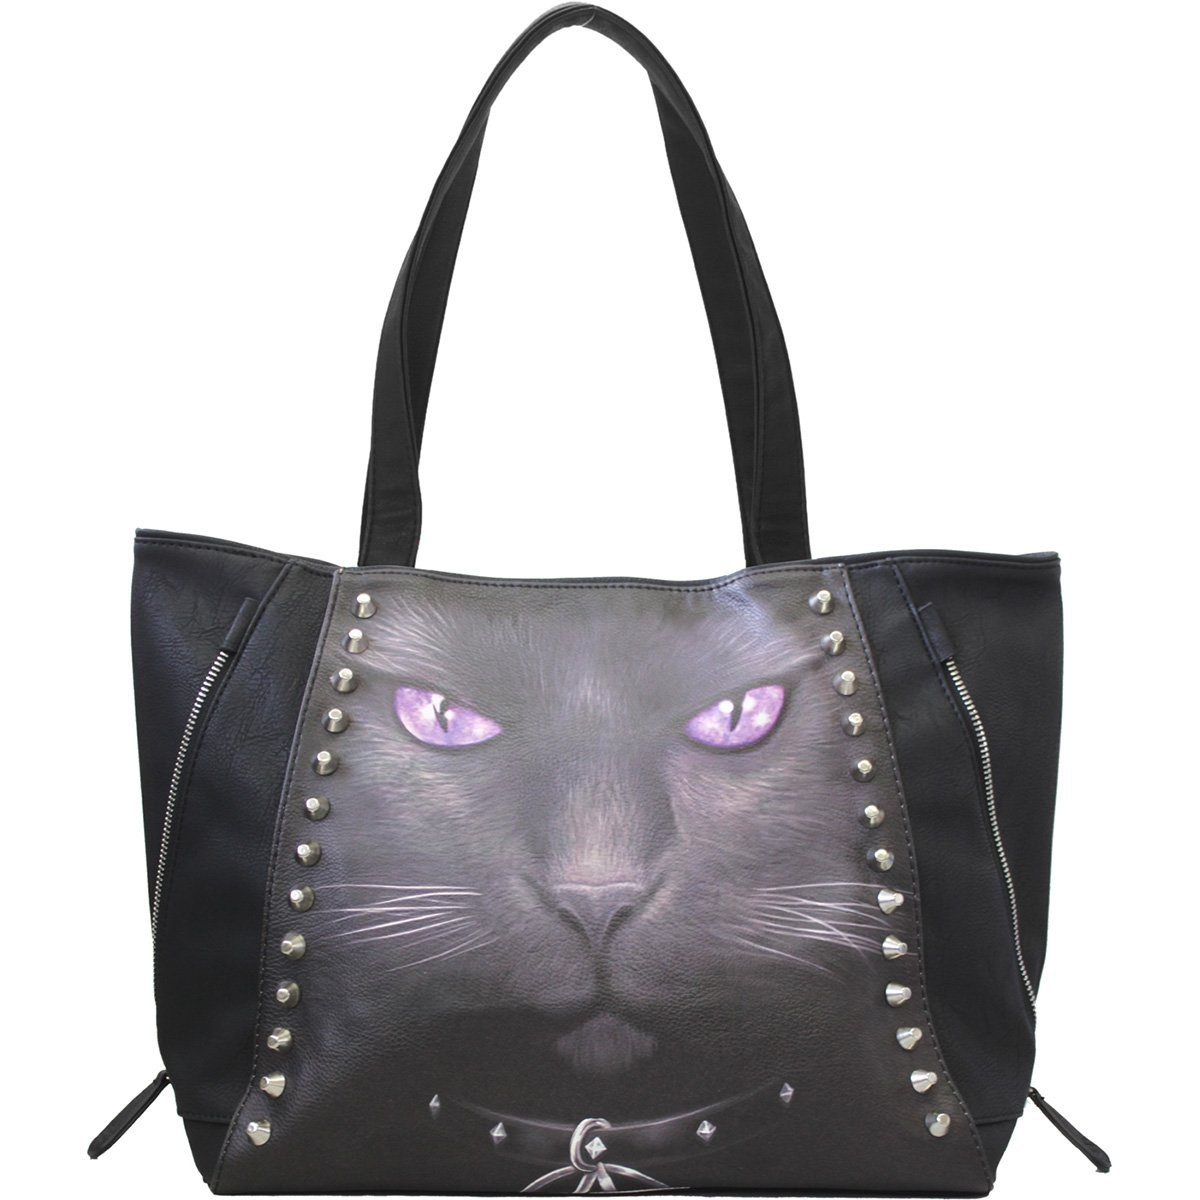 Black Cat Leather Tote Bag